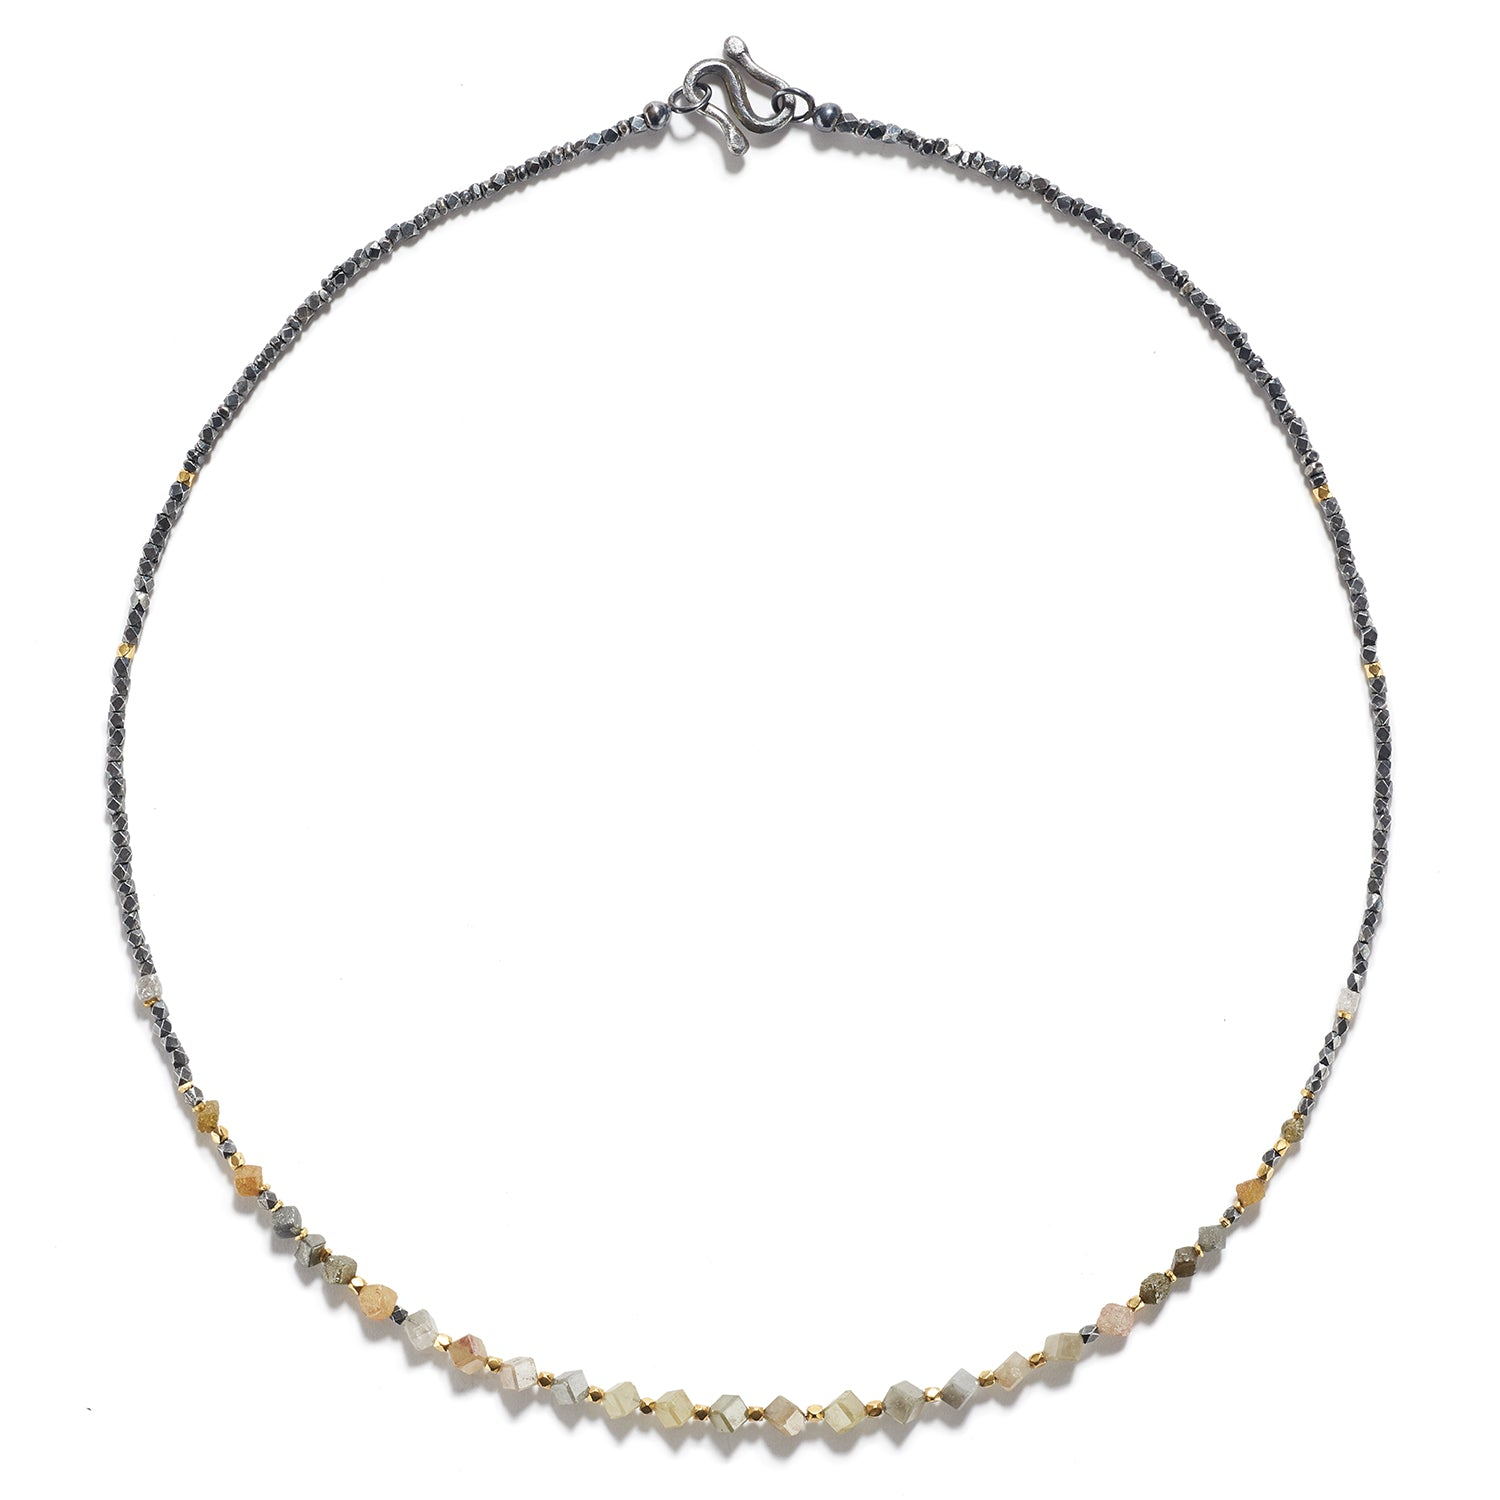 Burma Gold Necklace with Antique Silver & Rough Diamonds